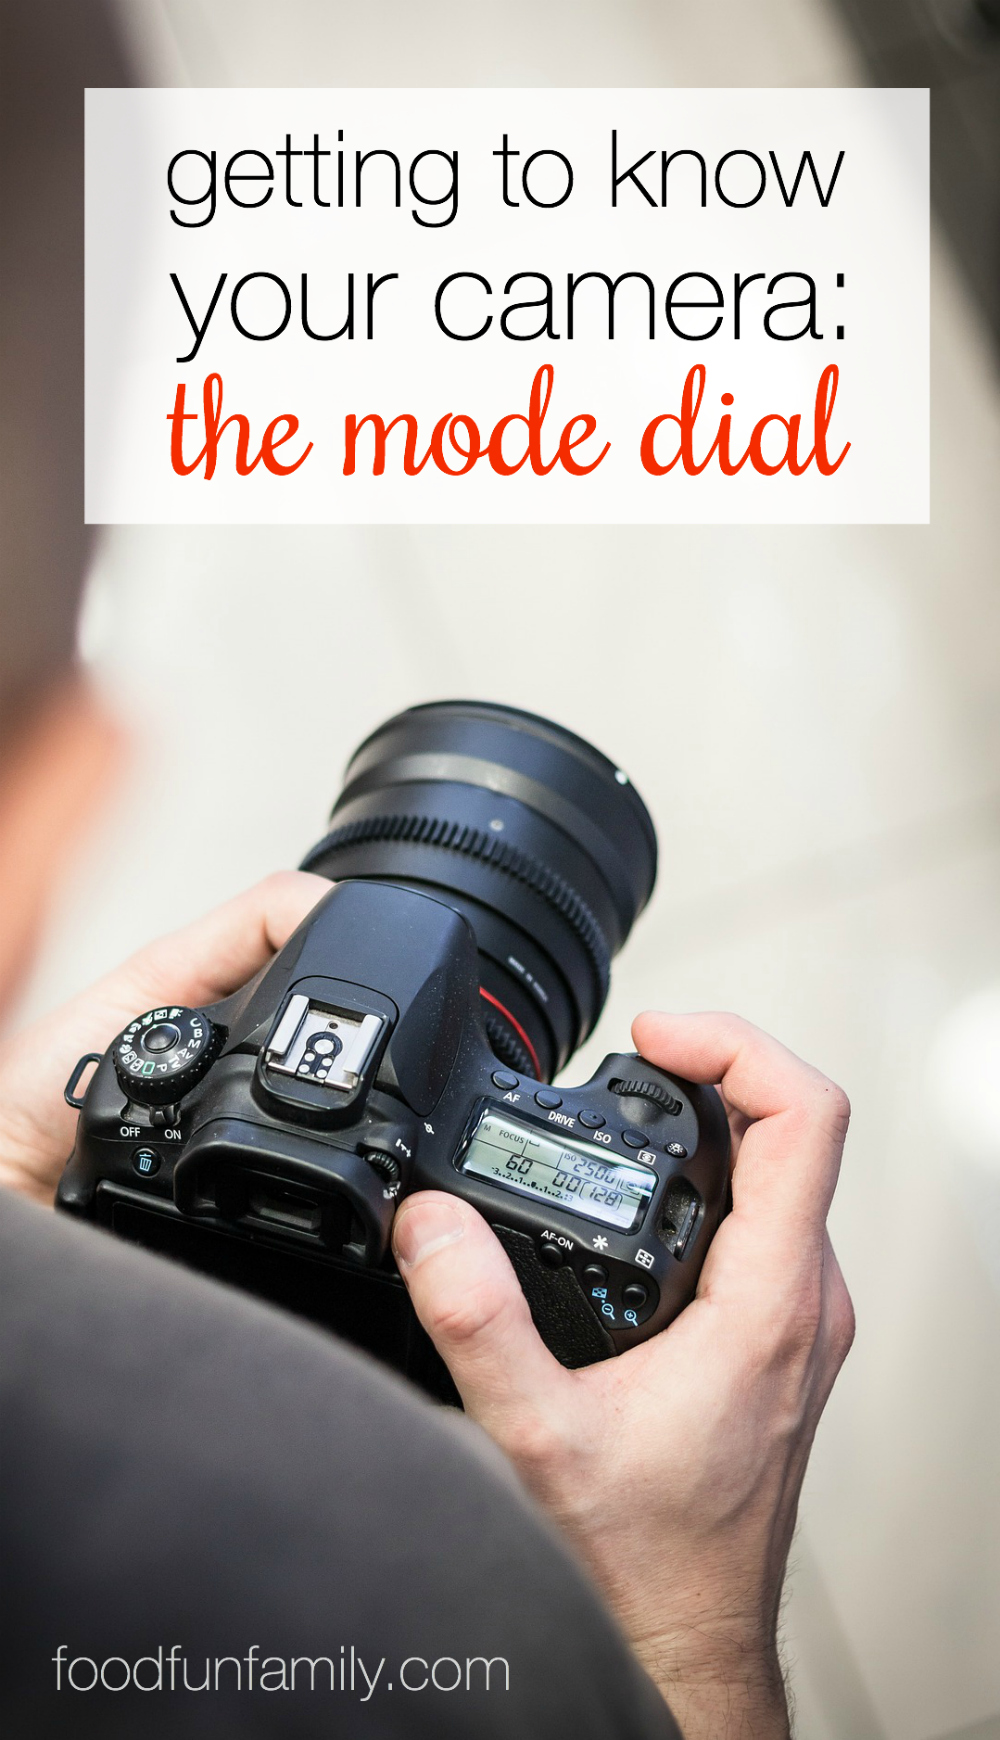 Getting to know your camera: the mode dial. Want to improve your photography? It starts with getting to know your camera and what all of those icons mean!